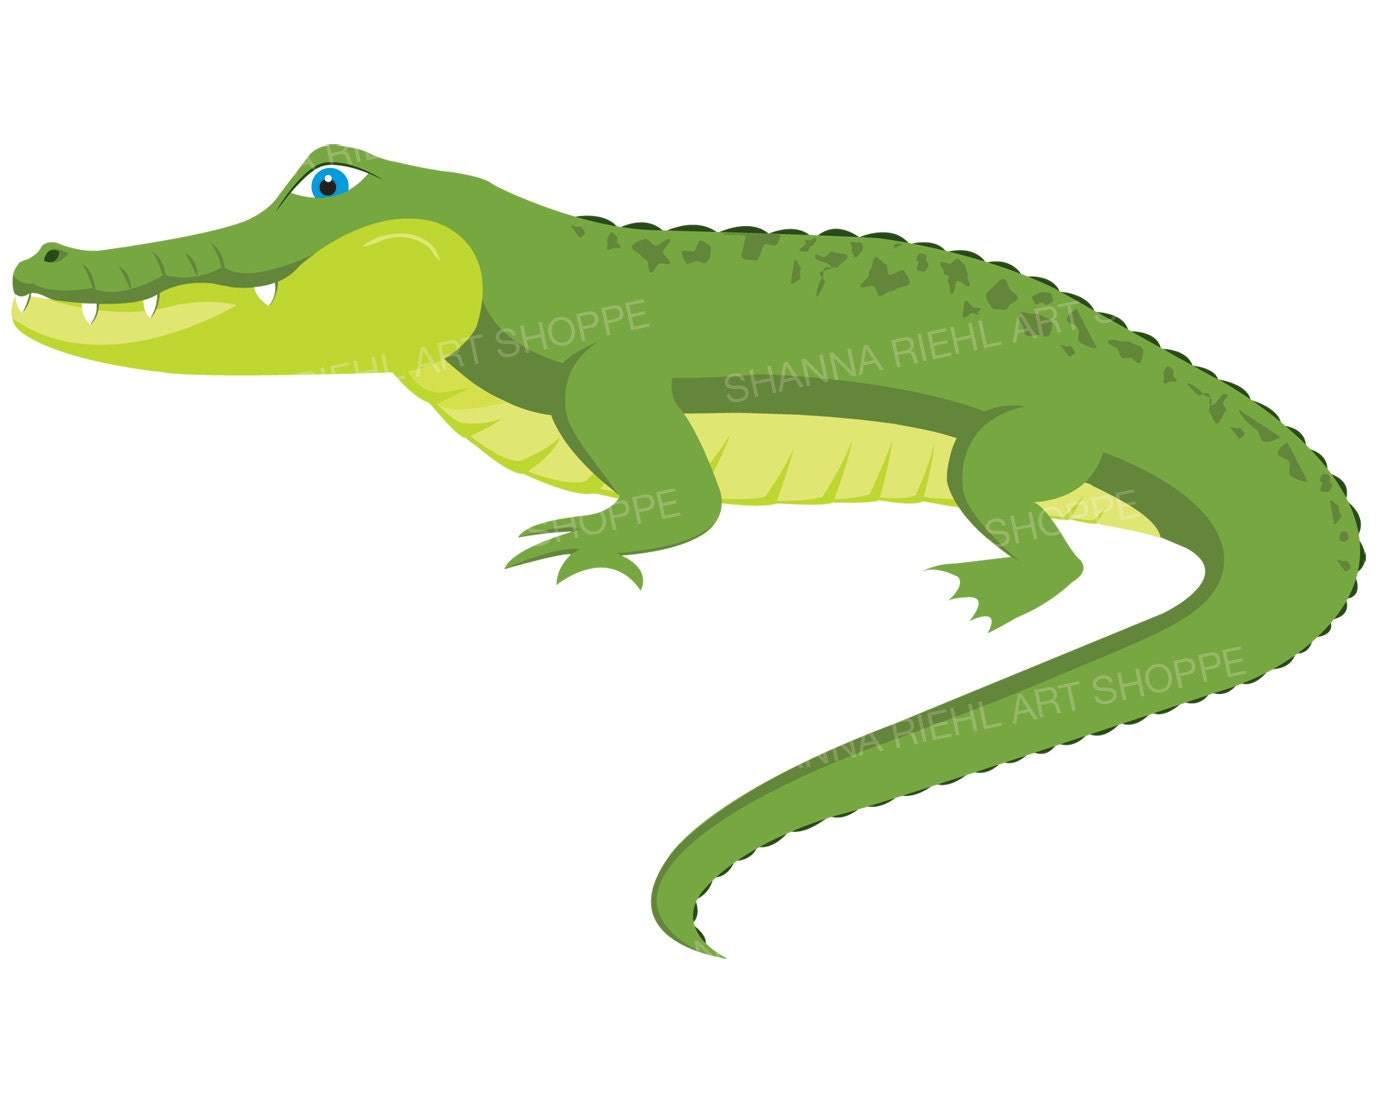 100% free online dating in alligator Looking for free sex dating to be honest, there are many options online and growing every day, even facebook allows you this opportunity if you know how.